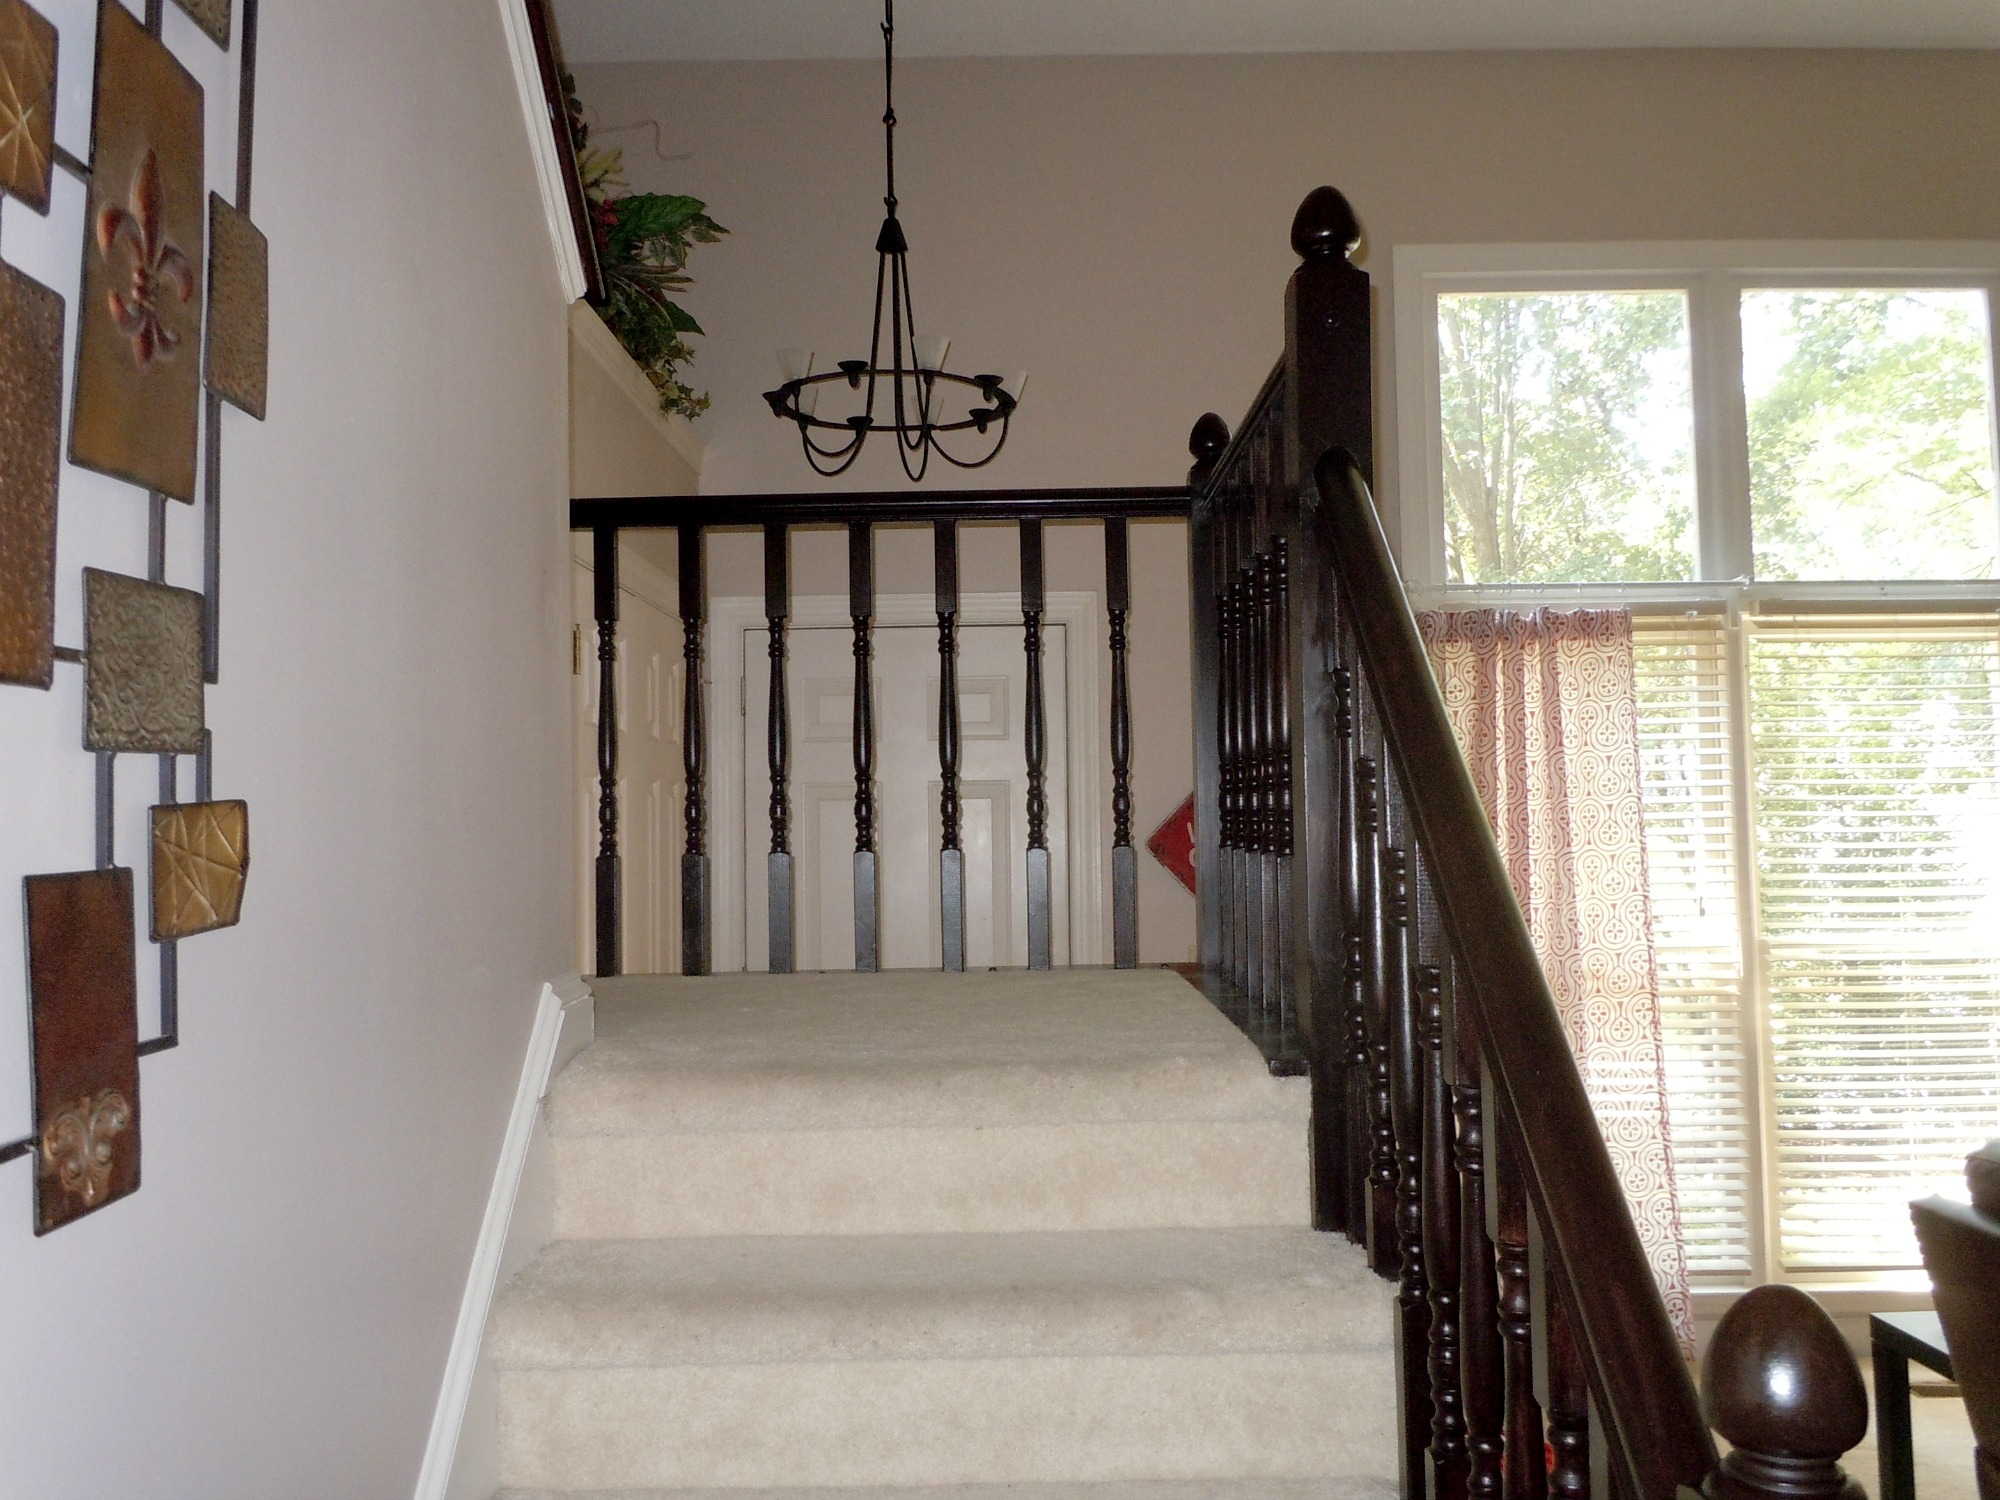 Java Gel Stain Stair Banister   A Diy Tutorial, Semi Domesticated Mama  Featured On